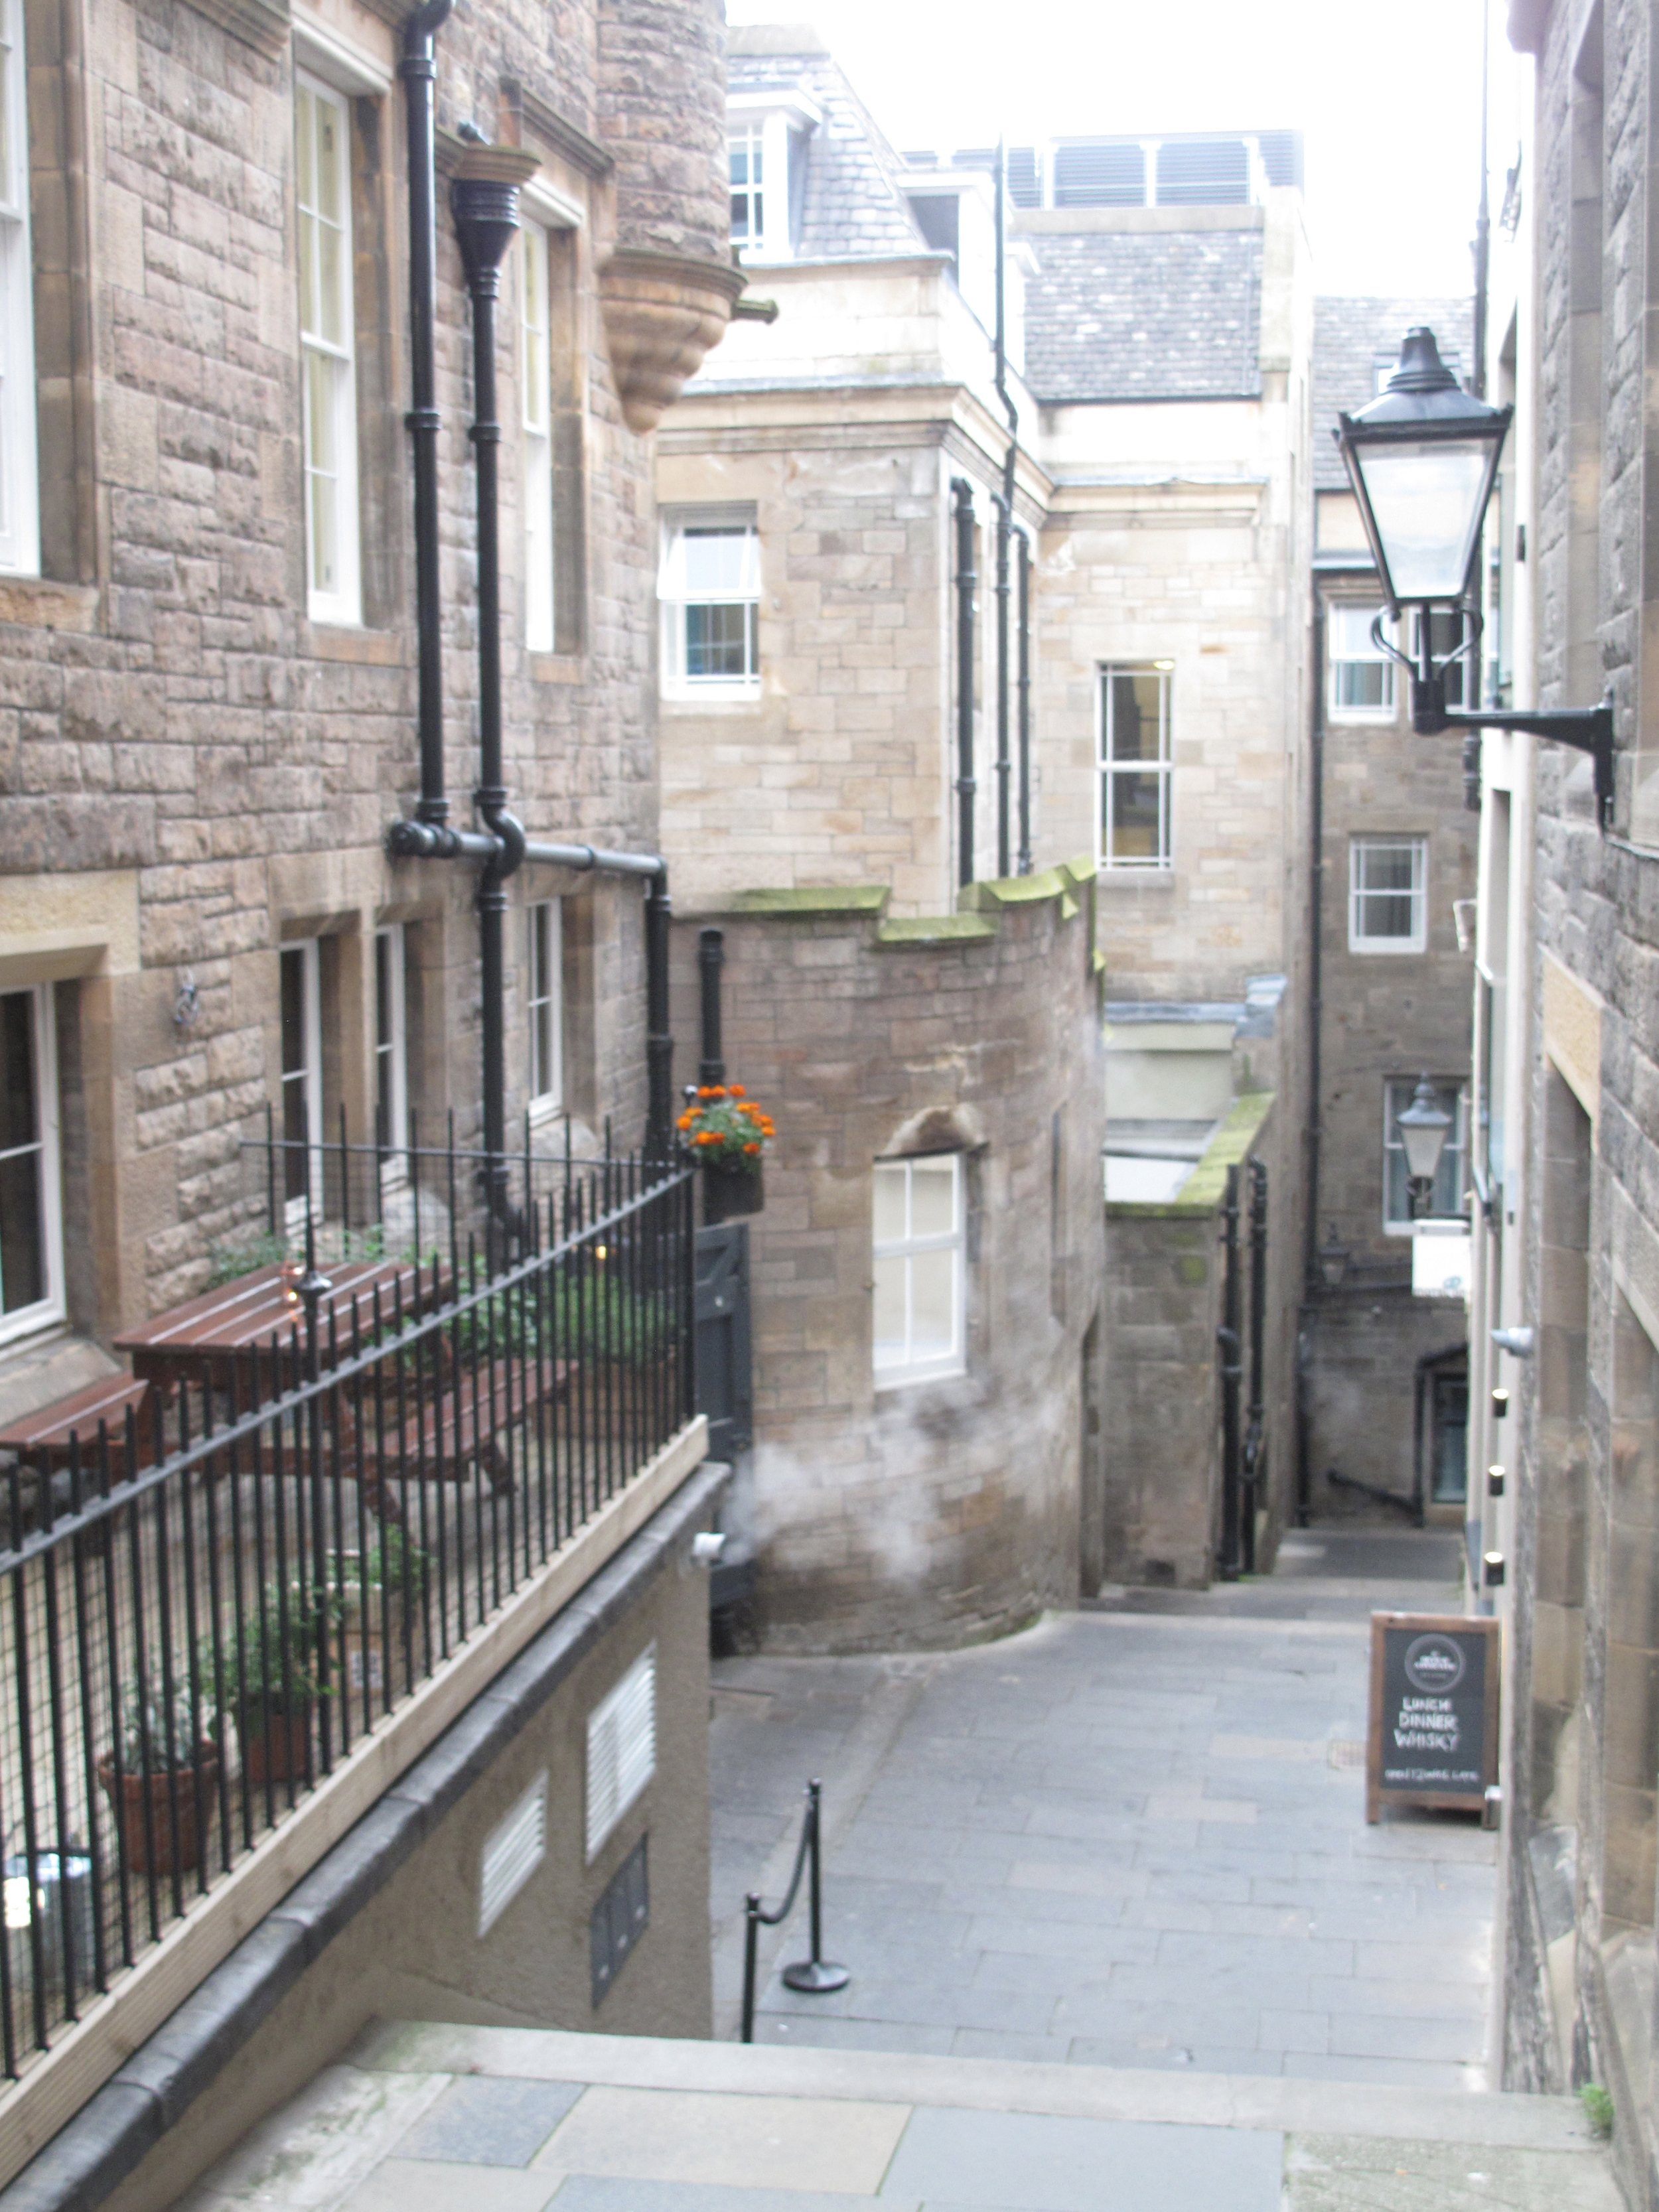 Wynd through a bright alley in the Old Town of Edinburgh.